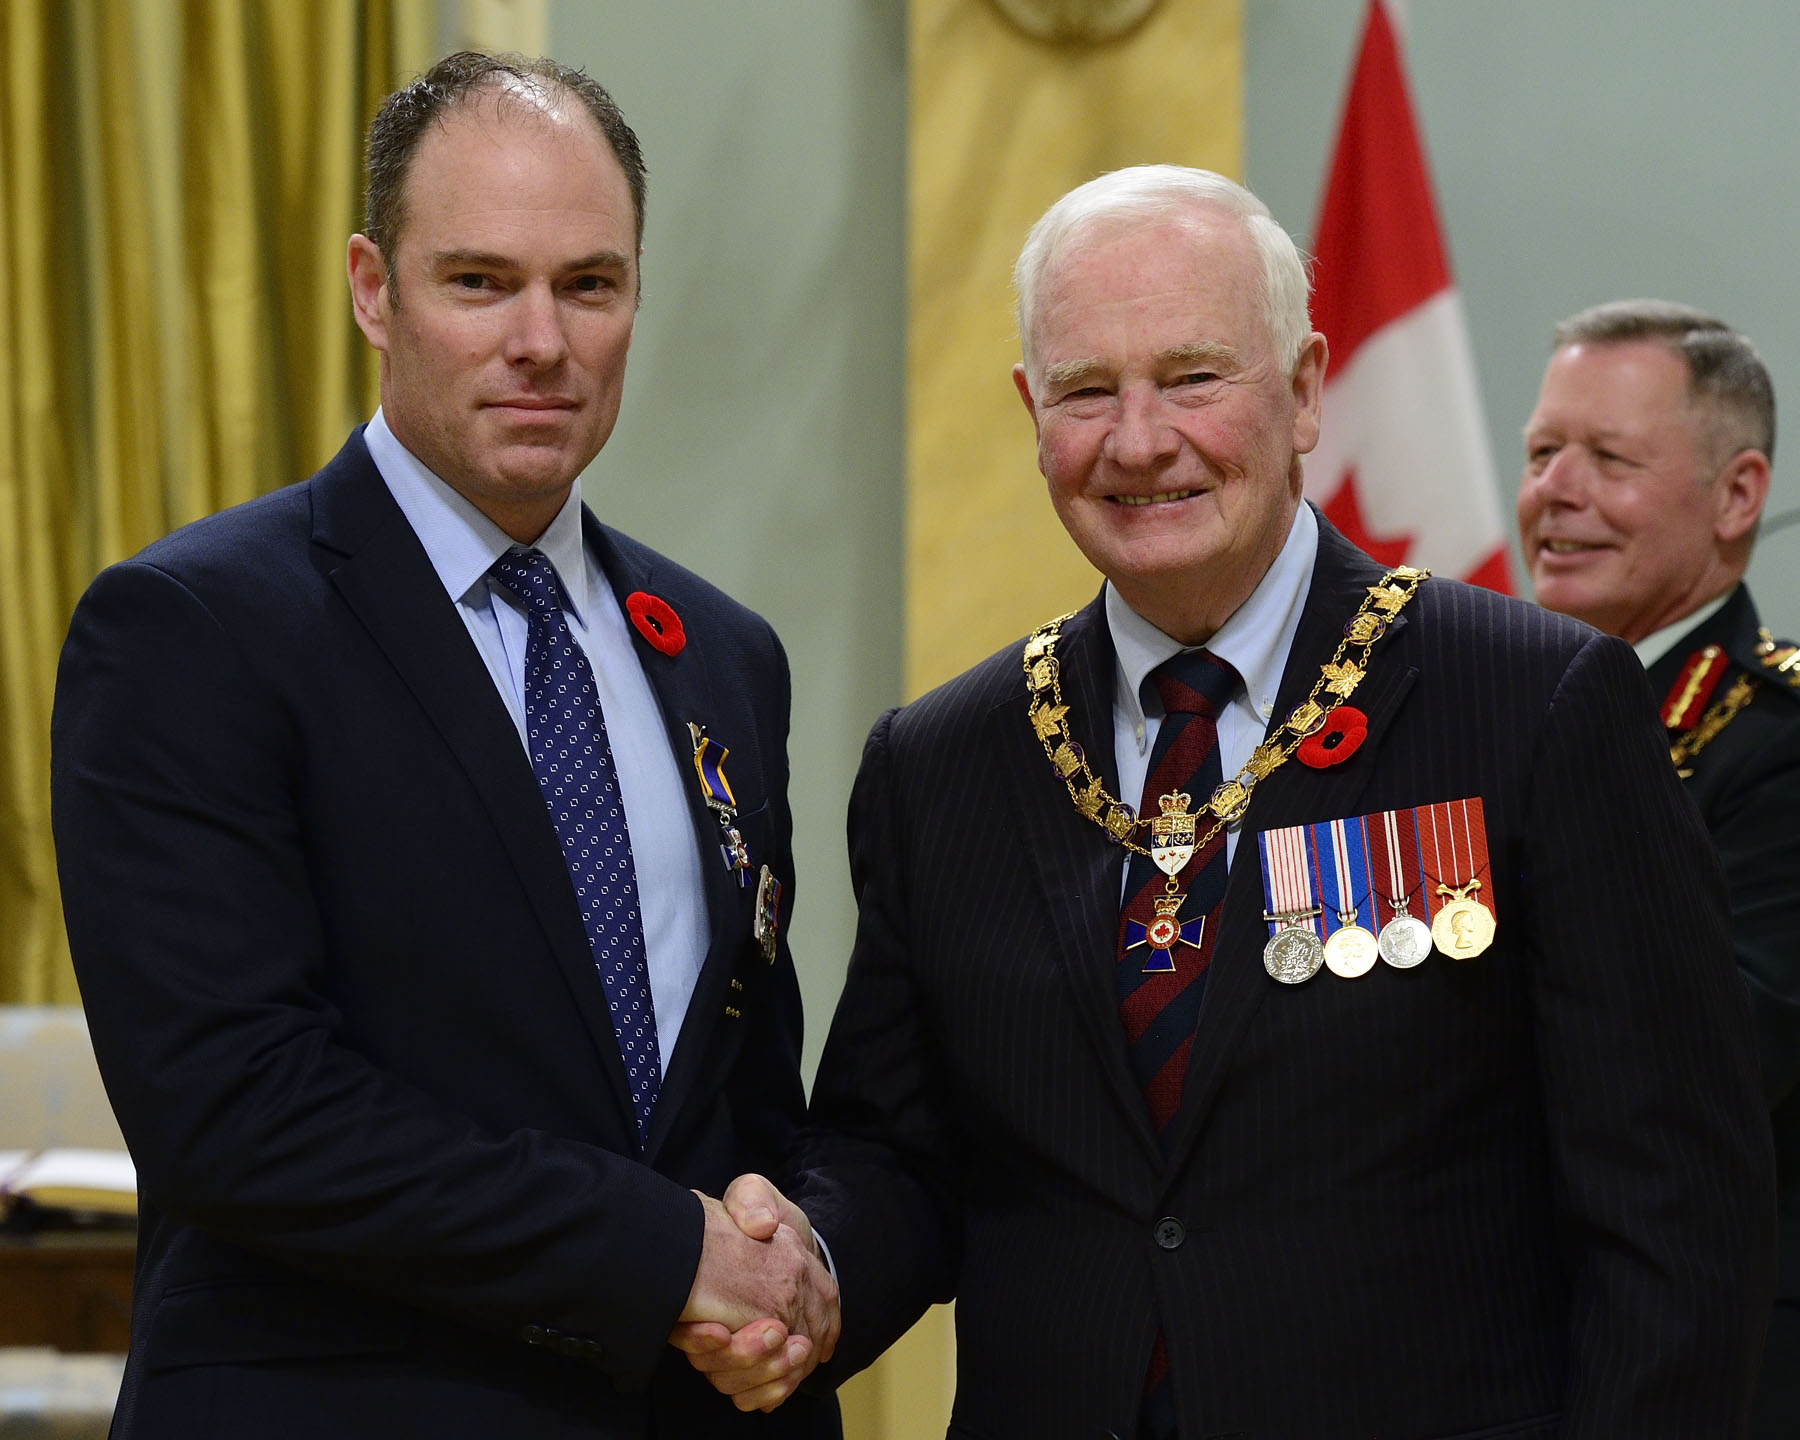 His Excellency presented the Order of Military Merit at the Member level (M.M.M.) to Warrant Officer Jonathan Douglas Hawtin, M.M.M., C.D., 1st Regiment, Royal Canadian Horse Artillery, Shilo, Manitoba.